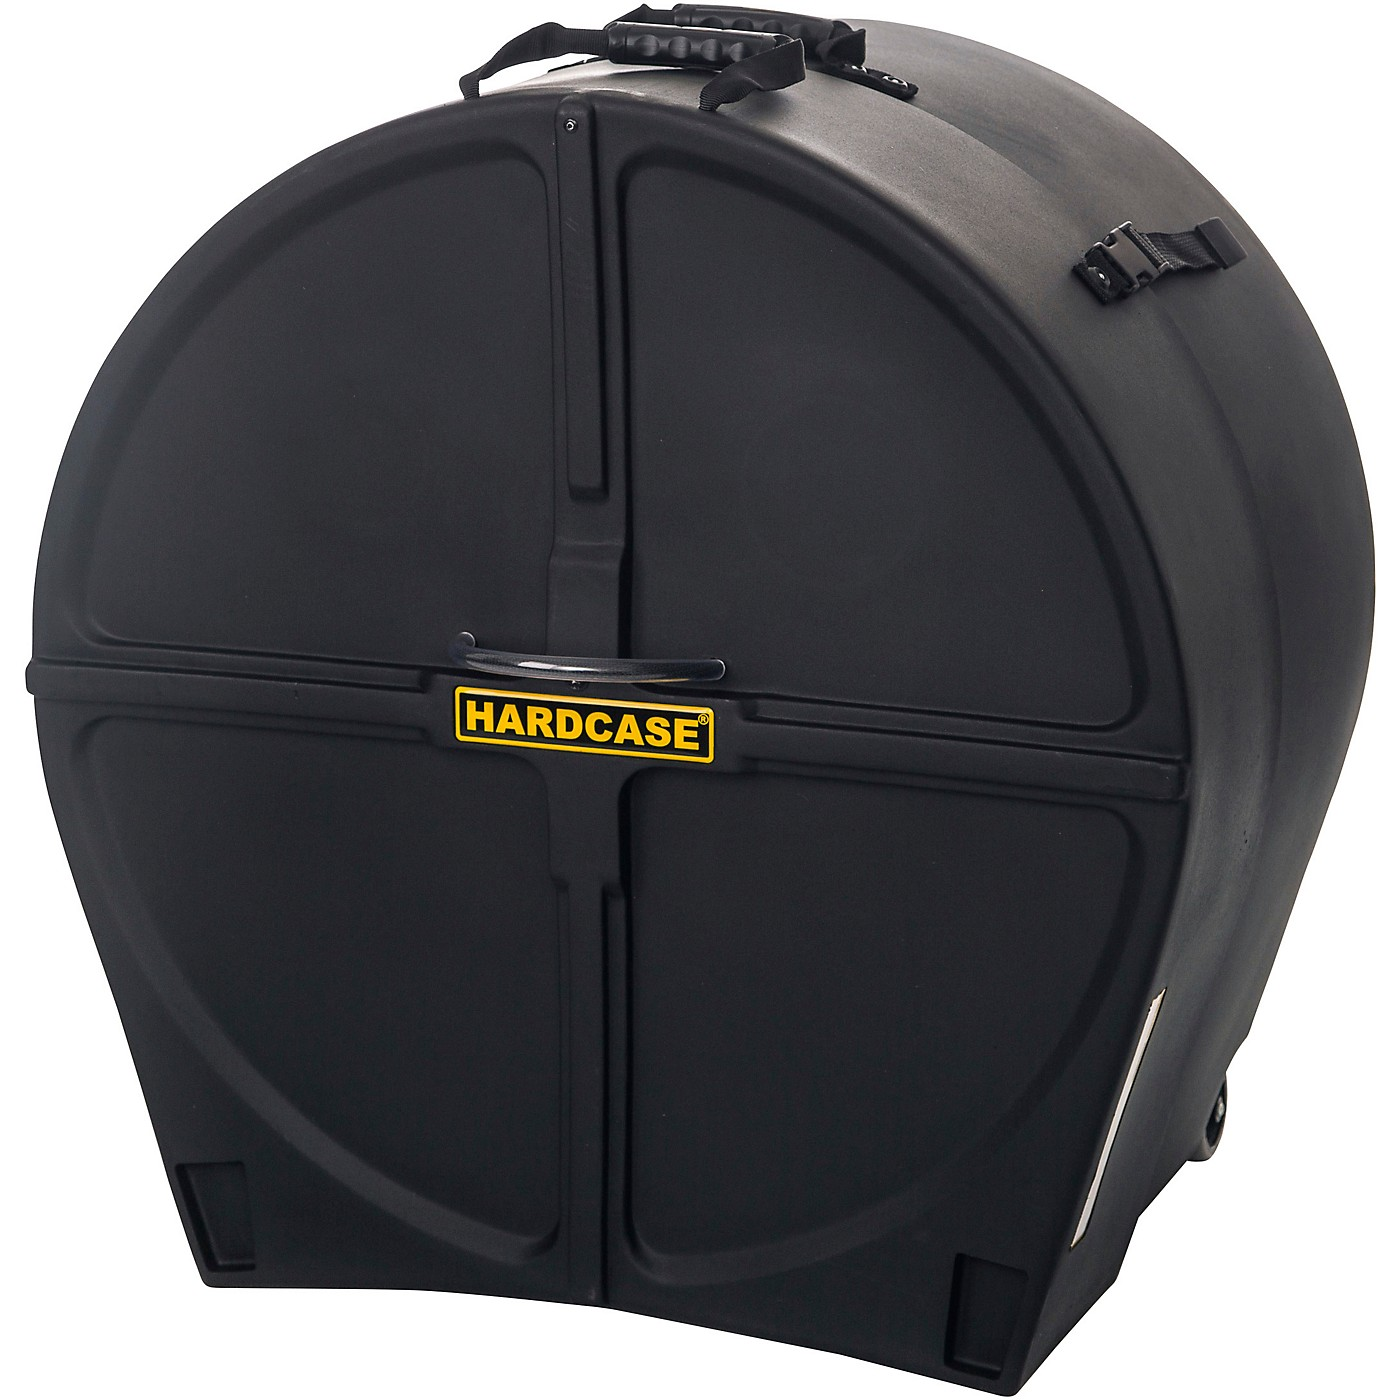 HARDCASE Bass Drum Case with Wheels thumbnail